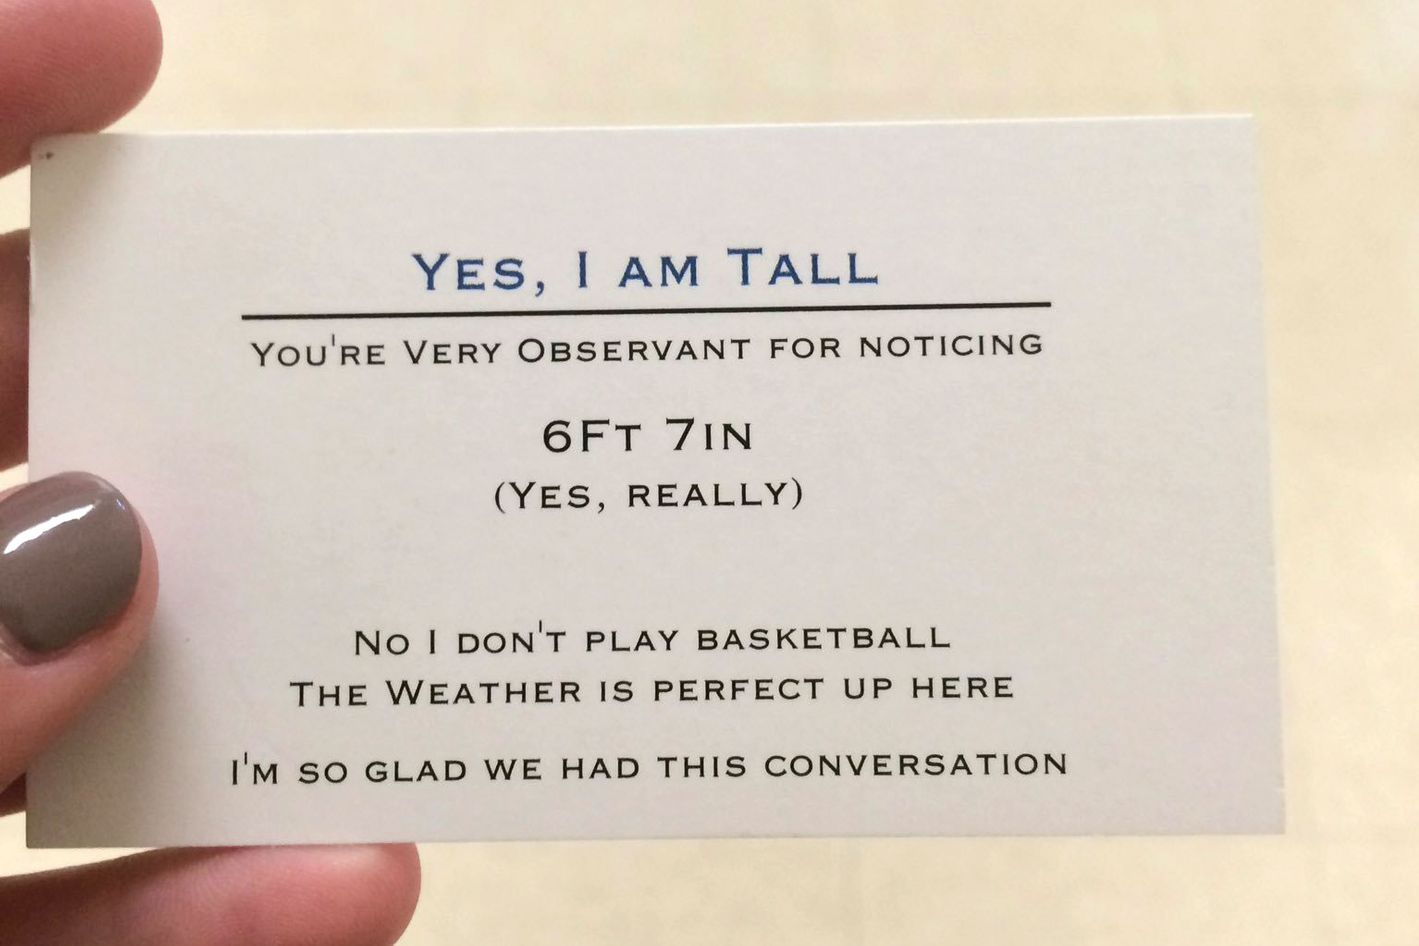 Tall Teenager Has Business Cards If You Ask About His Height